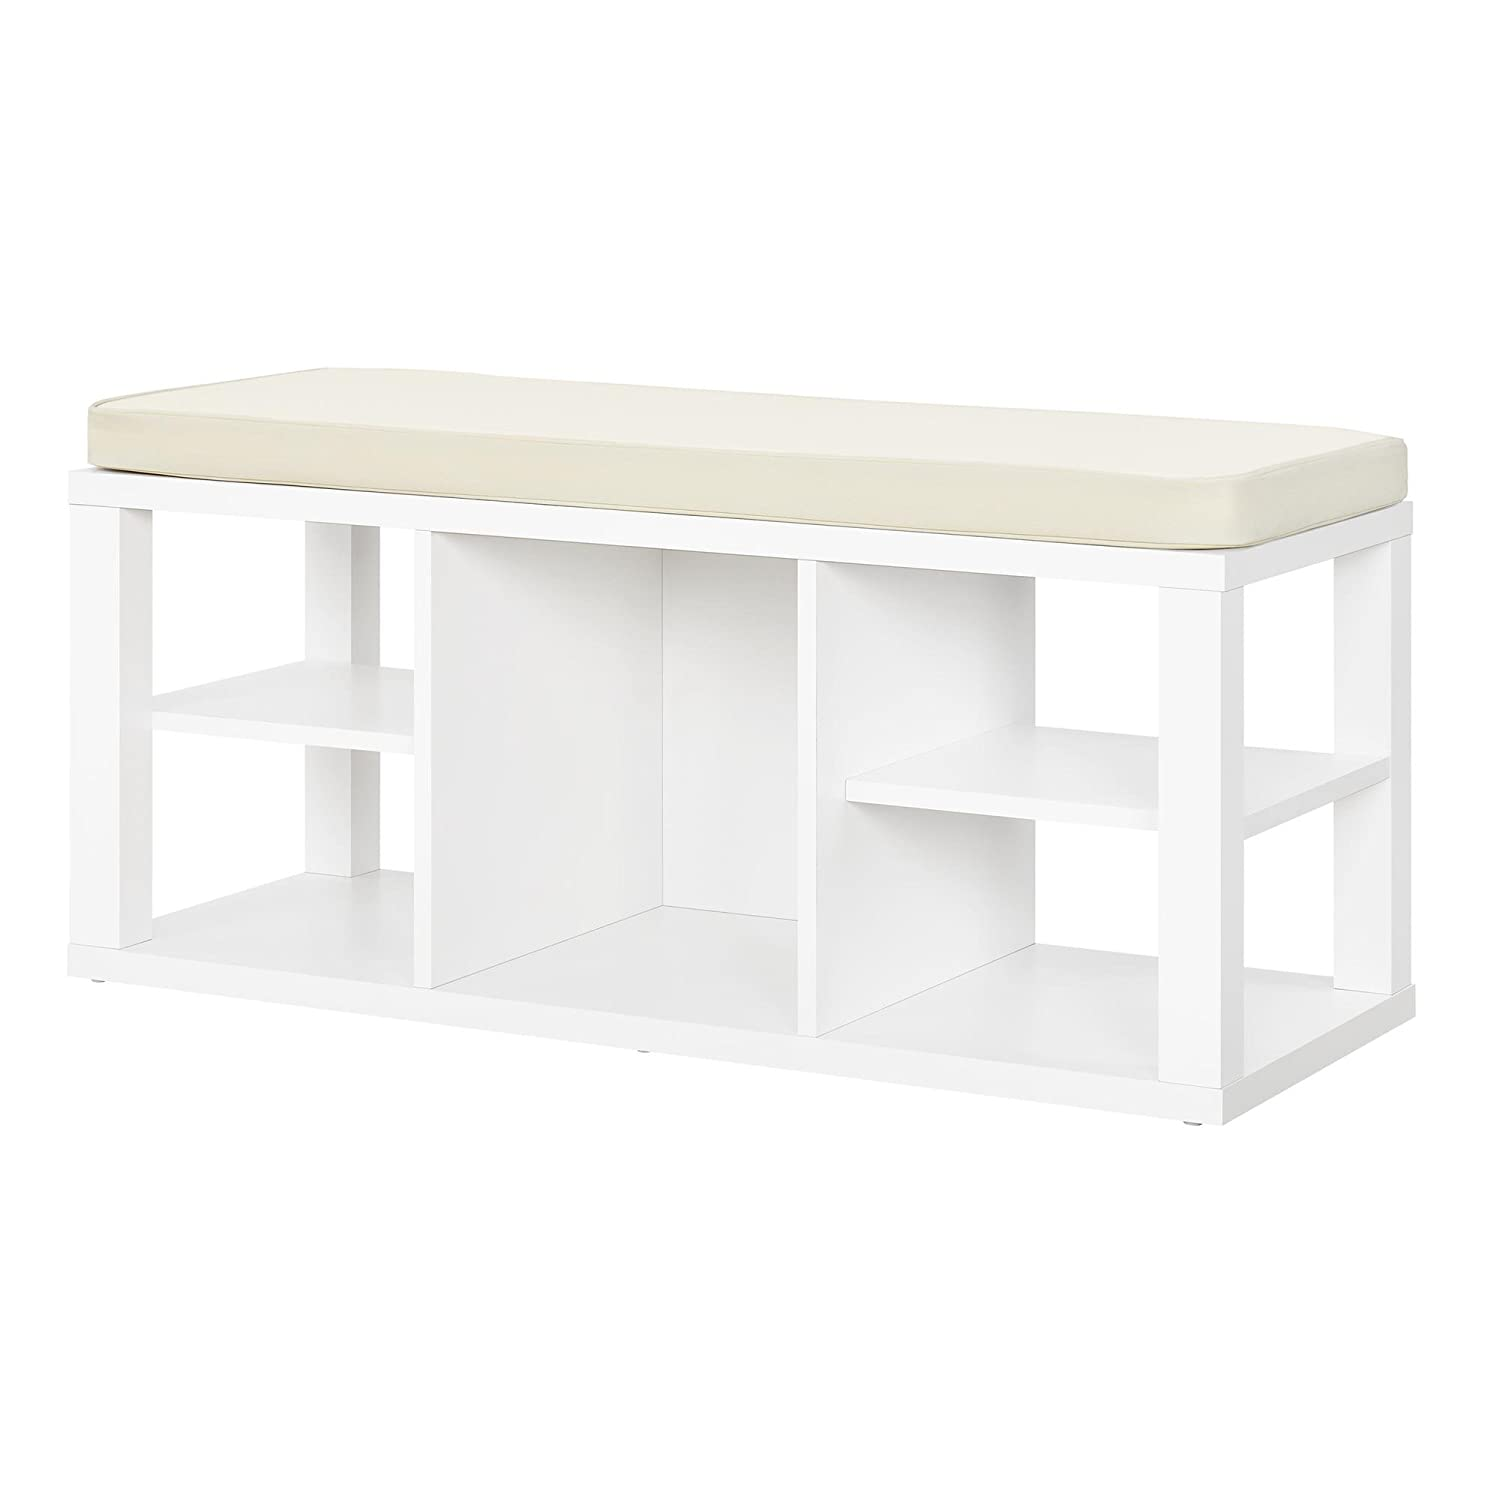 Astounding Ameriwood Home Parsons Storage Bench White Amazon Co Uk Gmtry Best Dining Table And Chair Ideas Images Gmtryco